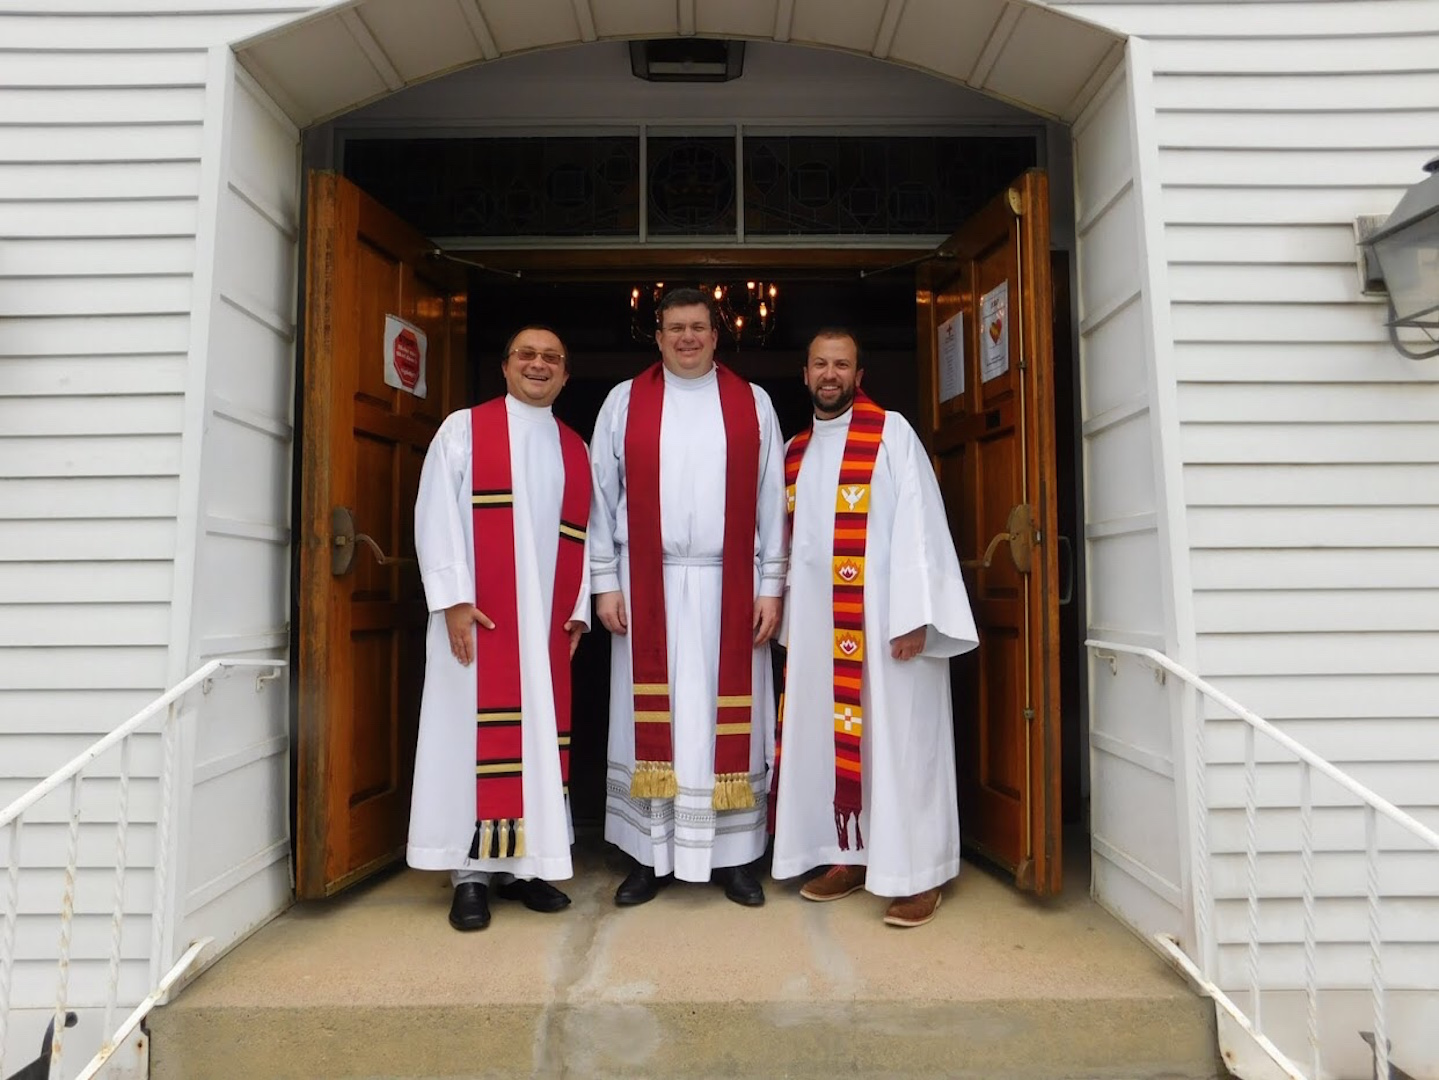 From left: the Rev. Kazmierz Bem, the Rev. Marc Bishop, and the Rev. Joseph Graumann (photo: First Church/Barbara Parente).